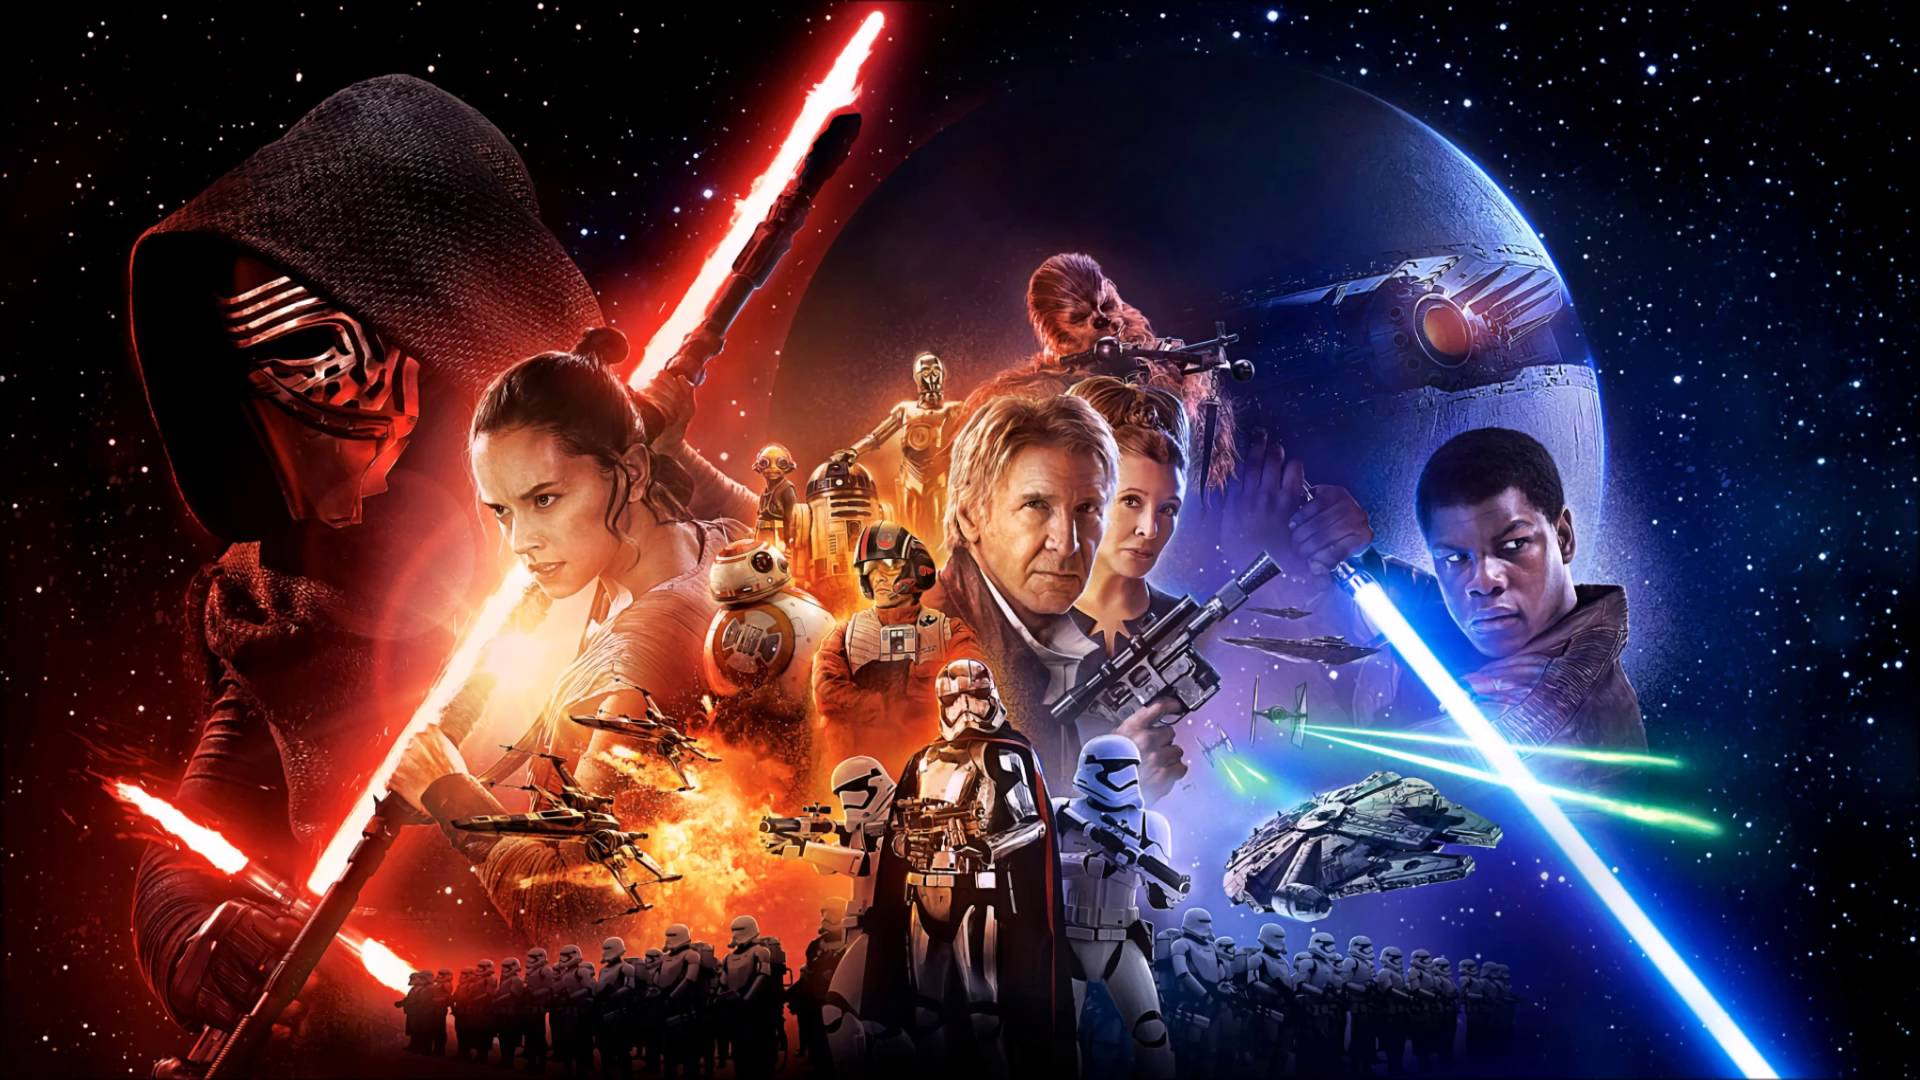 Star-Wars-The-Force-Awakens-poster-horizontal